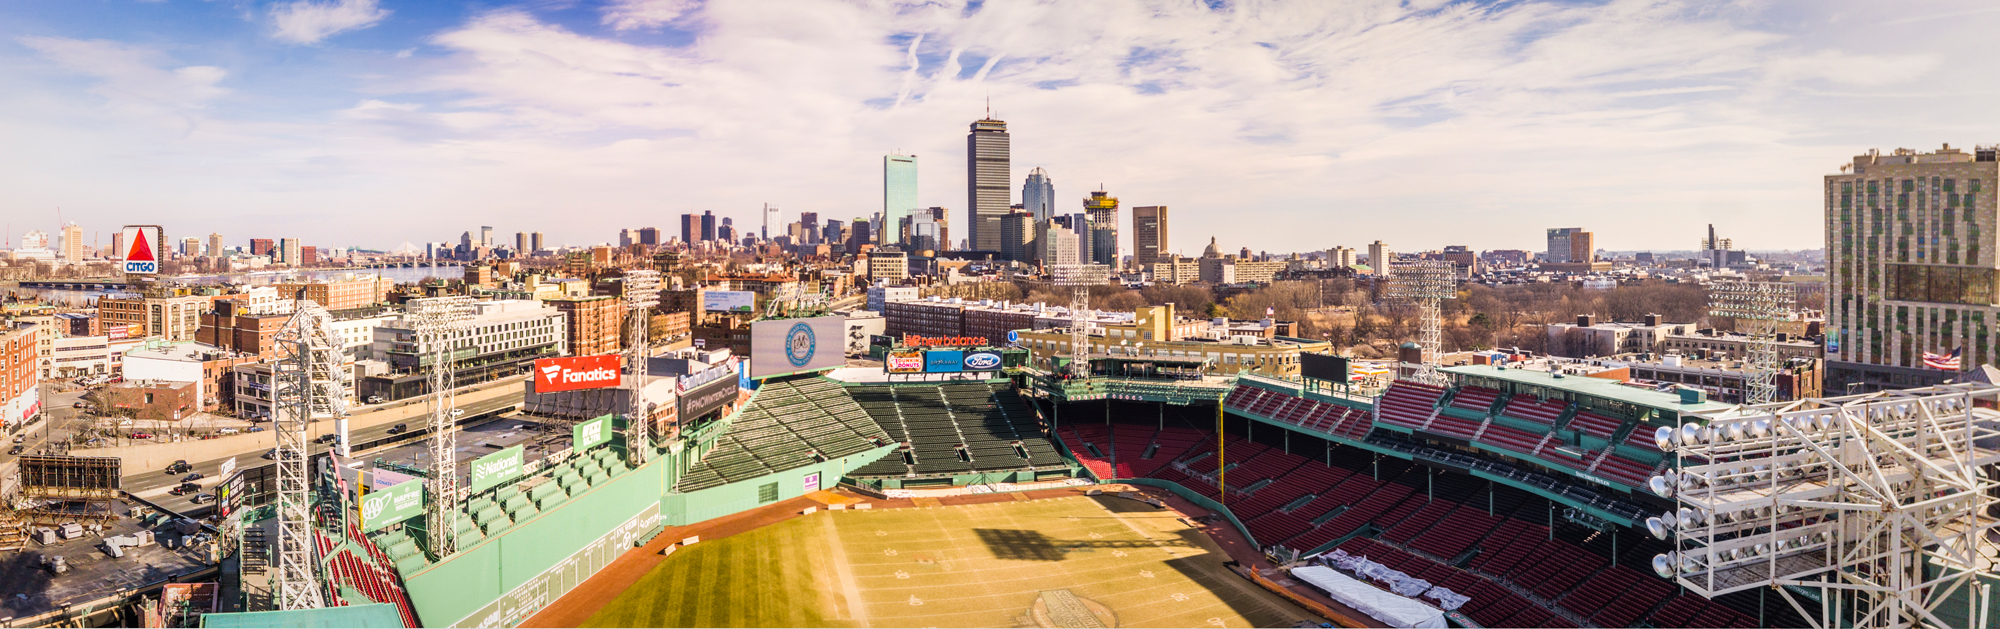 Aerial Shot of Fenway Park